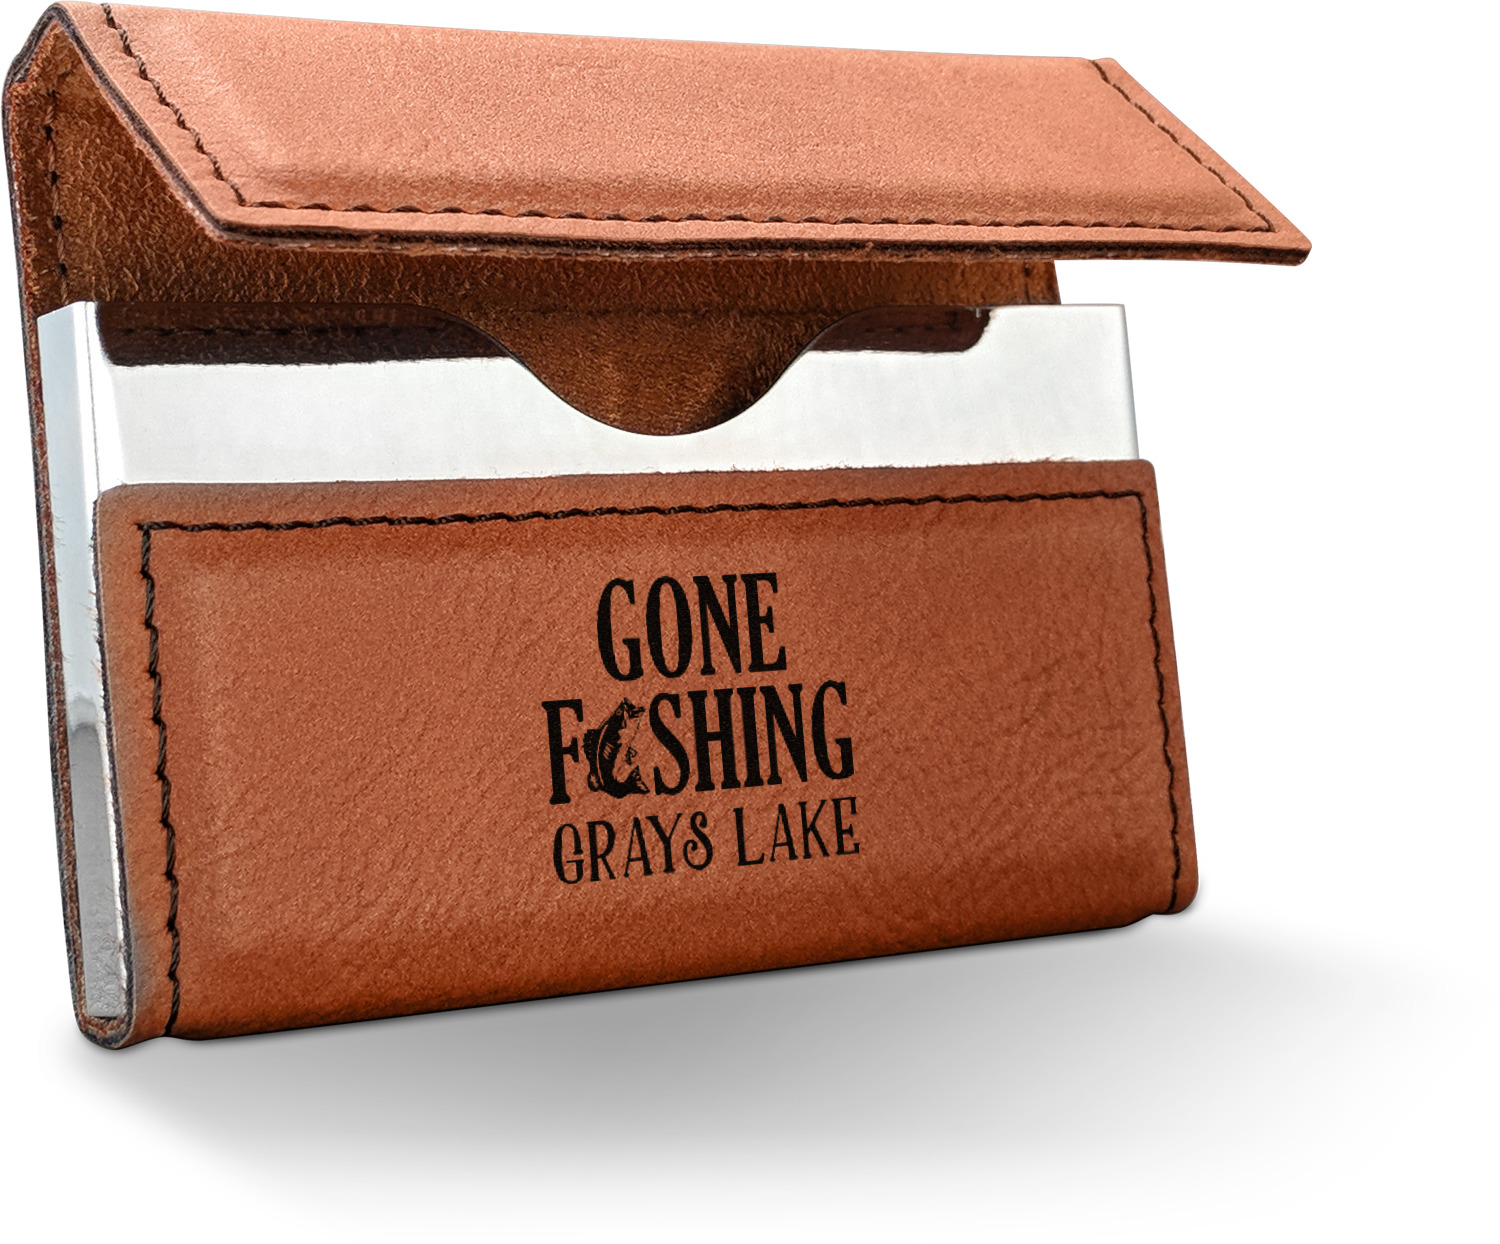 Hunting fishing quotes and sayings leatherette business card hunting fishing quotes and sayings leatherette business card holder personalized colourmoves